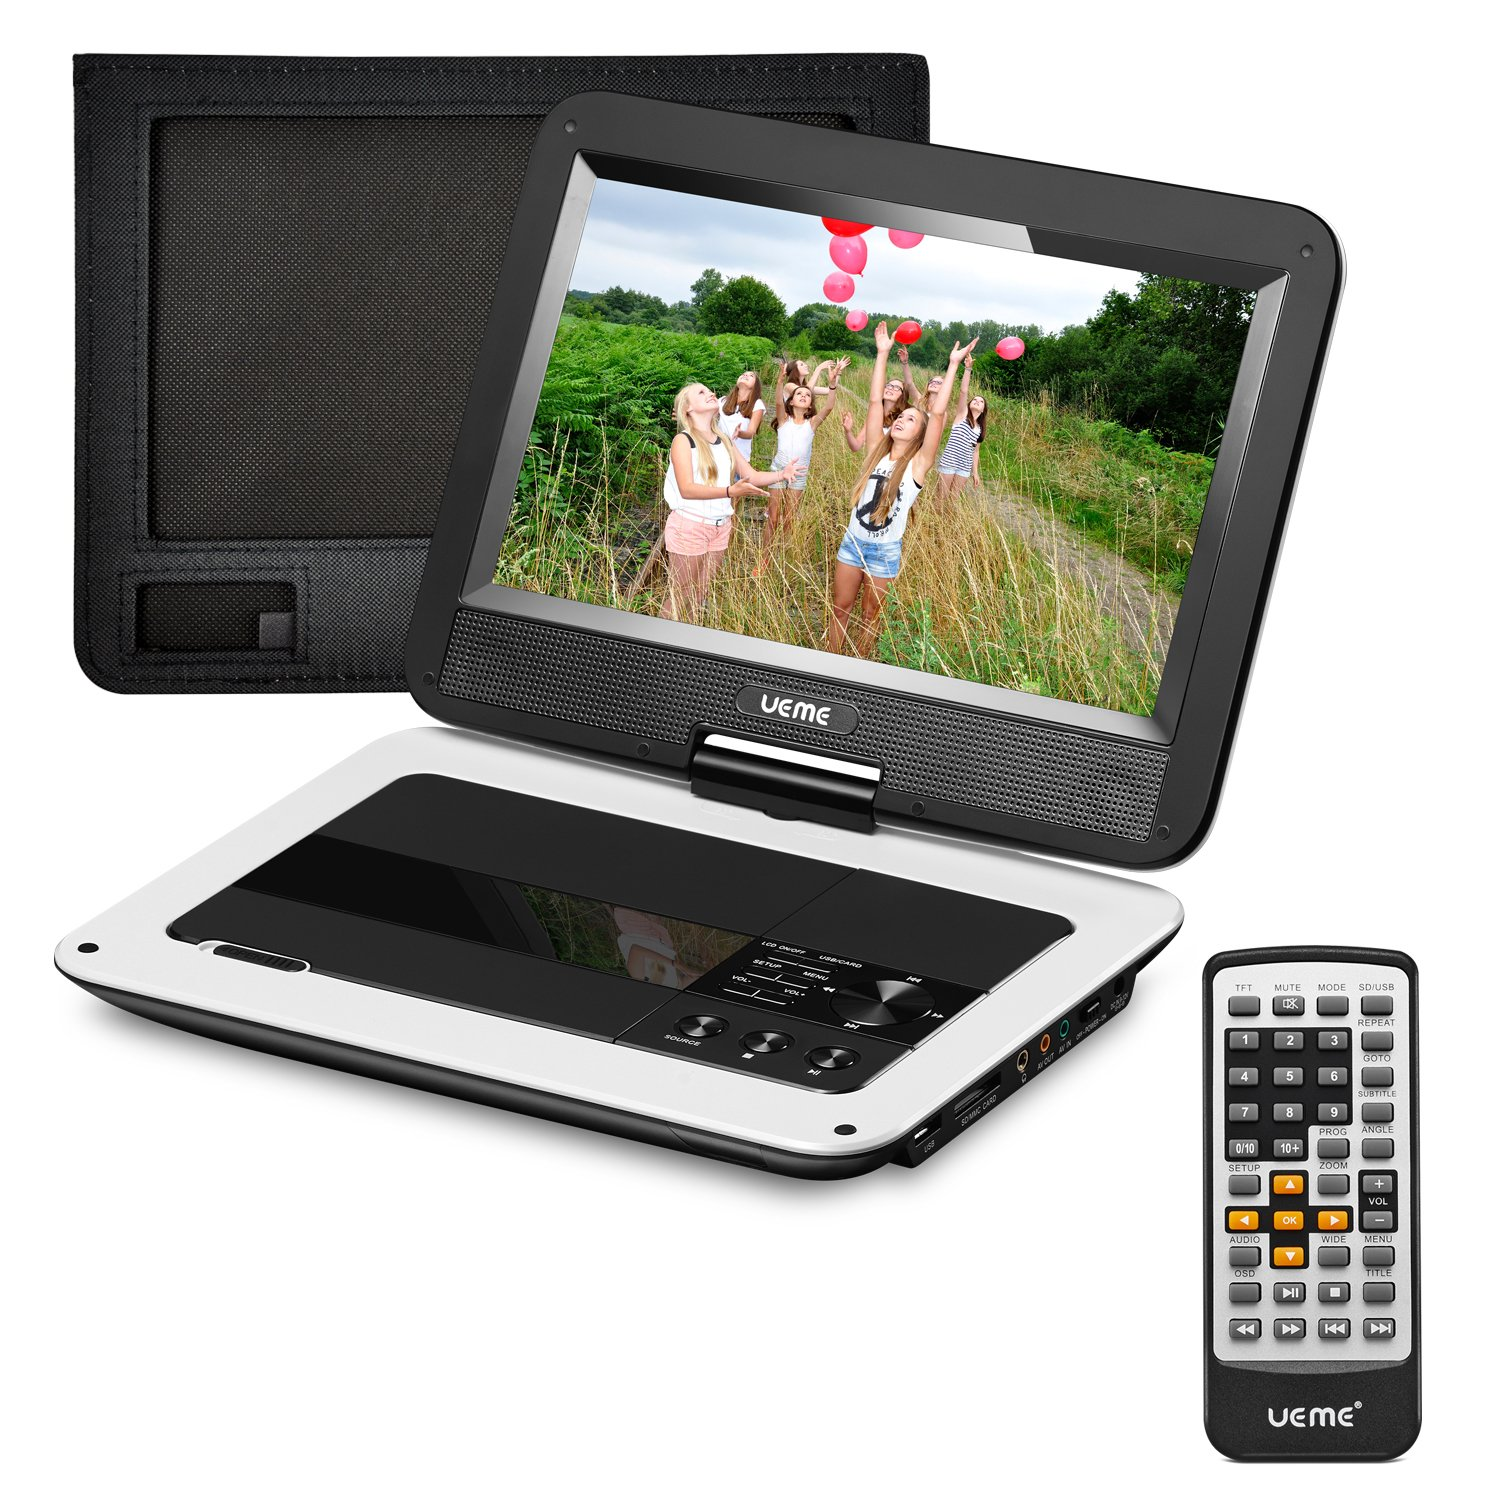 UEME Portable DVD CD Player with 10.1 Inches LCD Screen